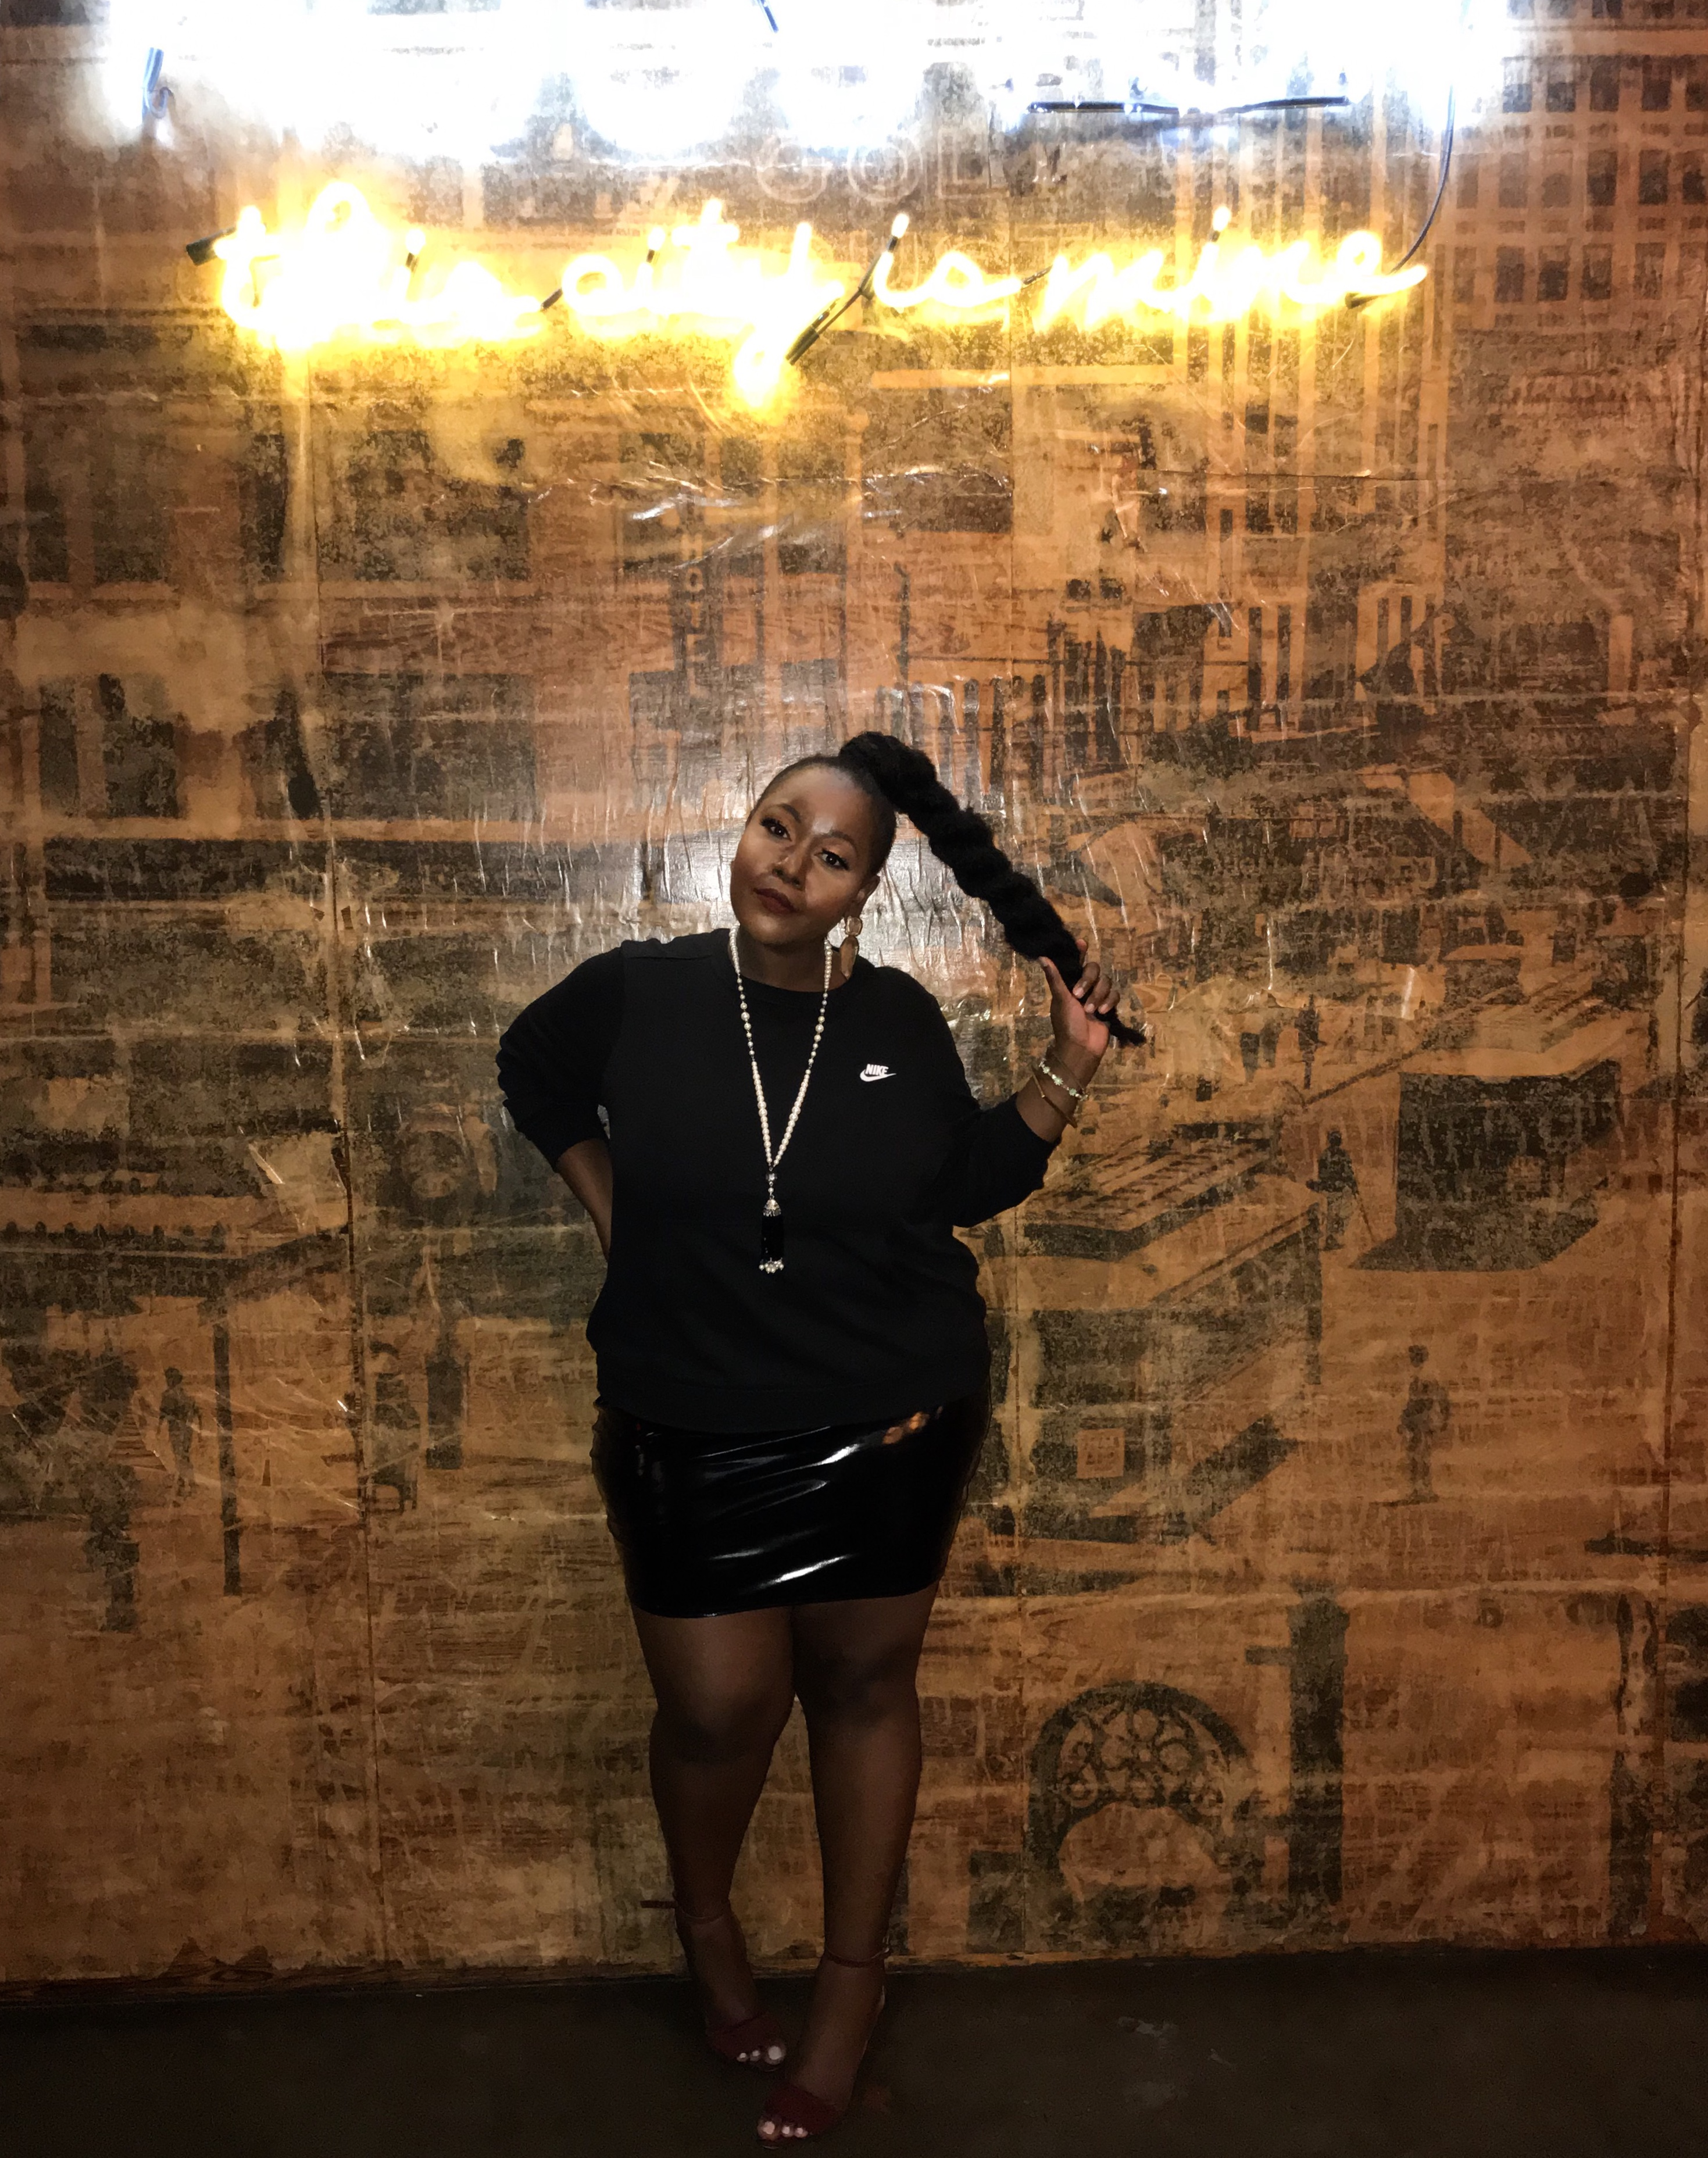 plus size fashion blogs 2017, beautiful curvy girls, how to fill the eye brow of a dark skin, beautiful plus size dark skin girls, plus size black bloggers, clothes for curvy girls, curvy girl fashion clothing, plus blog, plus size fashion tips, plus size women blog, curvy women fashion, plus blog, curvy girl fashion blog, style plus curves, plus size fashion instagram, curvy girl blog, bbw blog, plus size street fashion, plus size beauty blog, plus size fashion ideas, curvy girl summer outfits, plus size fashion magazine, plus fashion bloggers, zara, Rosie the riveter shirt; Emilia embroidered beaded clutch; Vince Camuto heels; Nike Basic Crew Neck Sweater, boohoo Plus Lace Up PU Skirt.